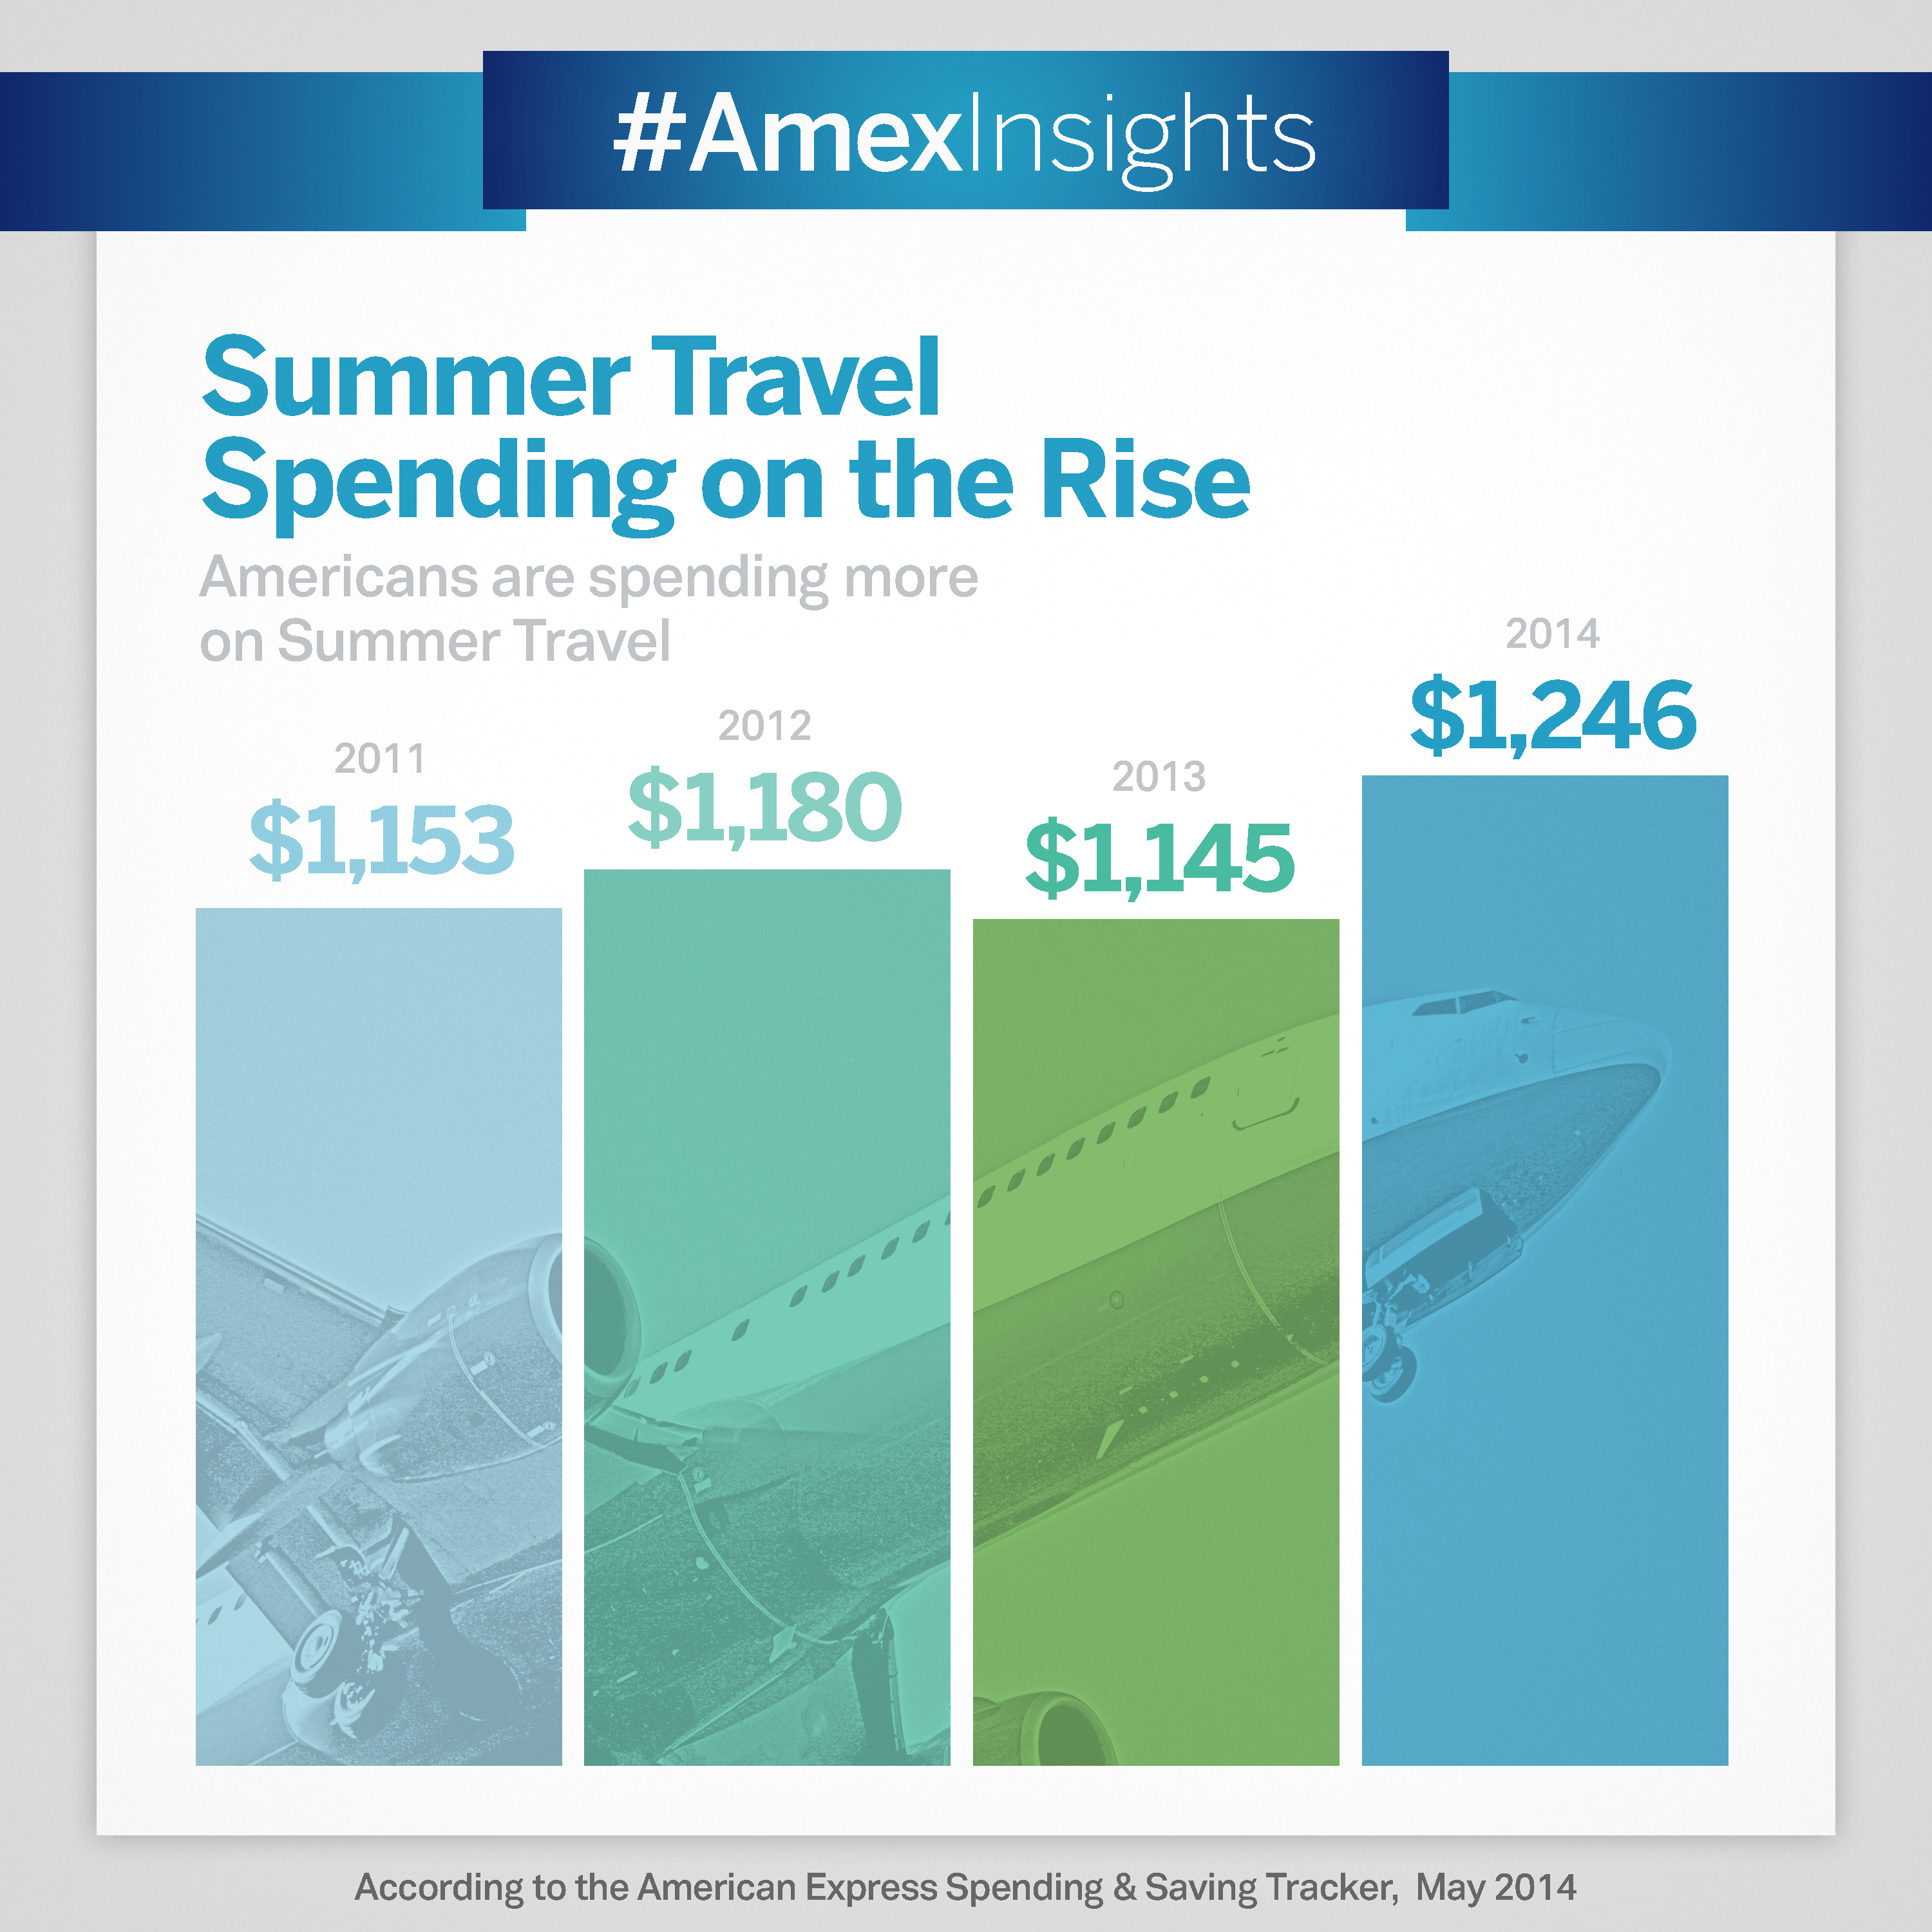 No matter their final destination, travelers will dig a little deeper in their wallets: consumers expect to pay $1,246 per person on average, up 9% from last year, according to the latest American Express Spending & Saving Tracker. (Photo: Business Wire)